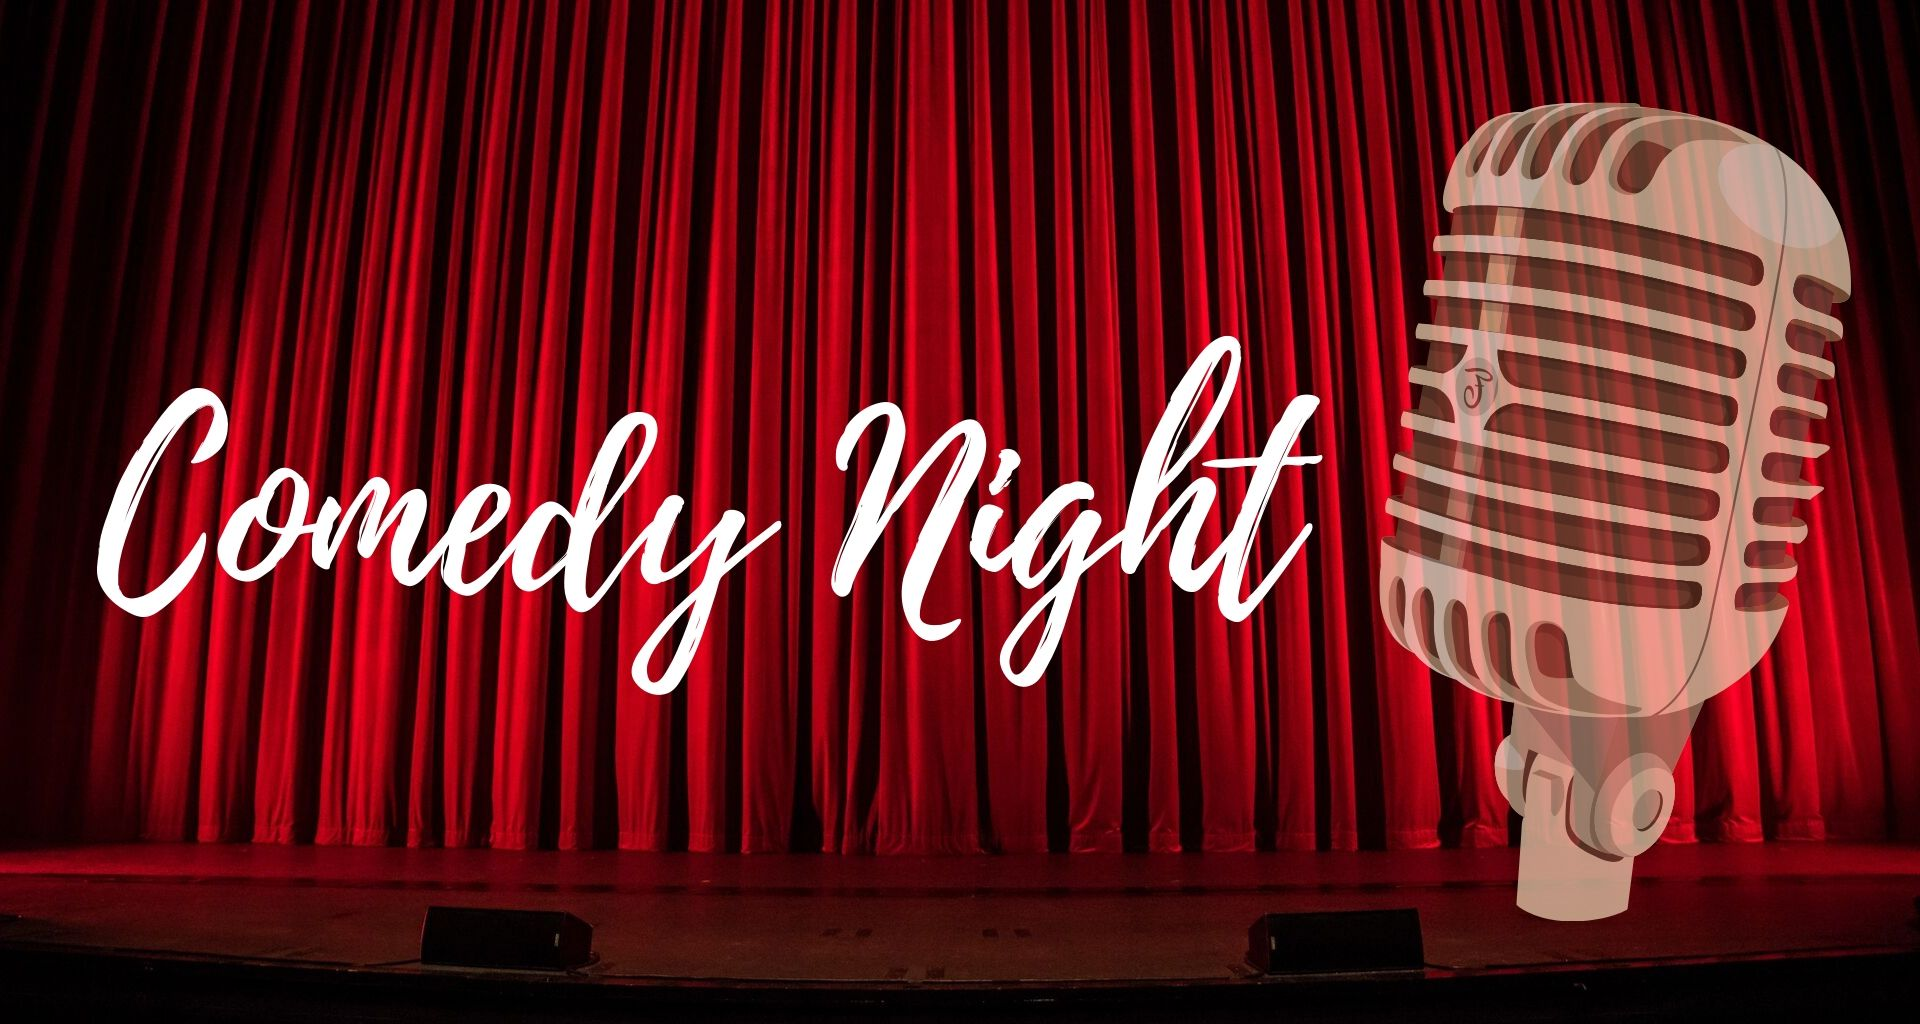 Top Event - Comedy Night